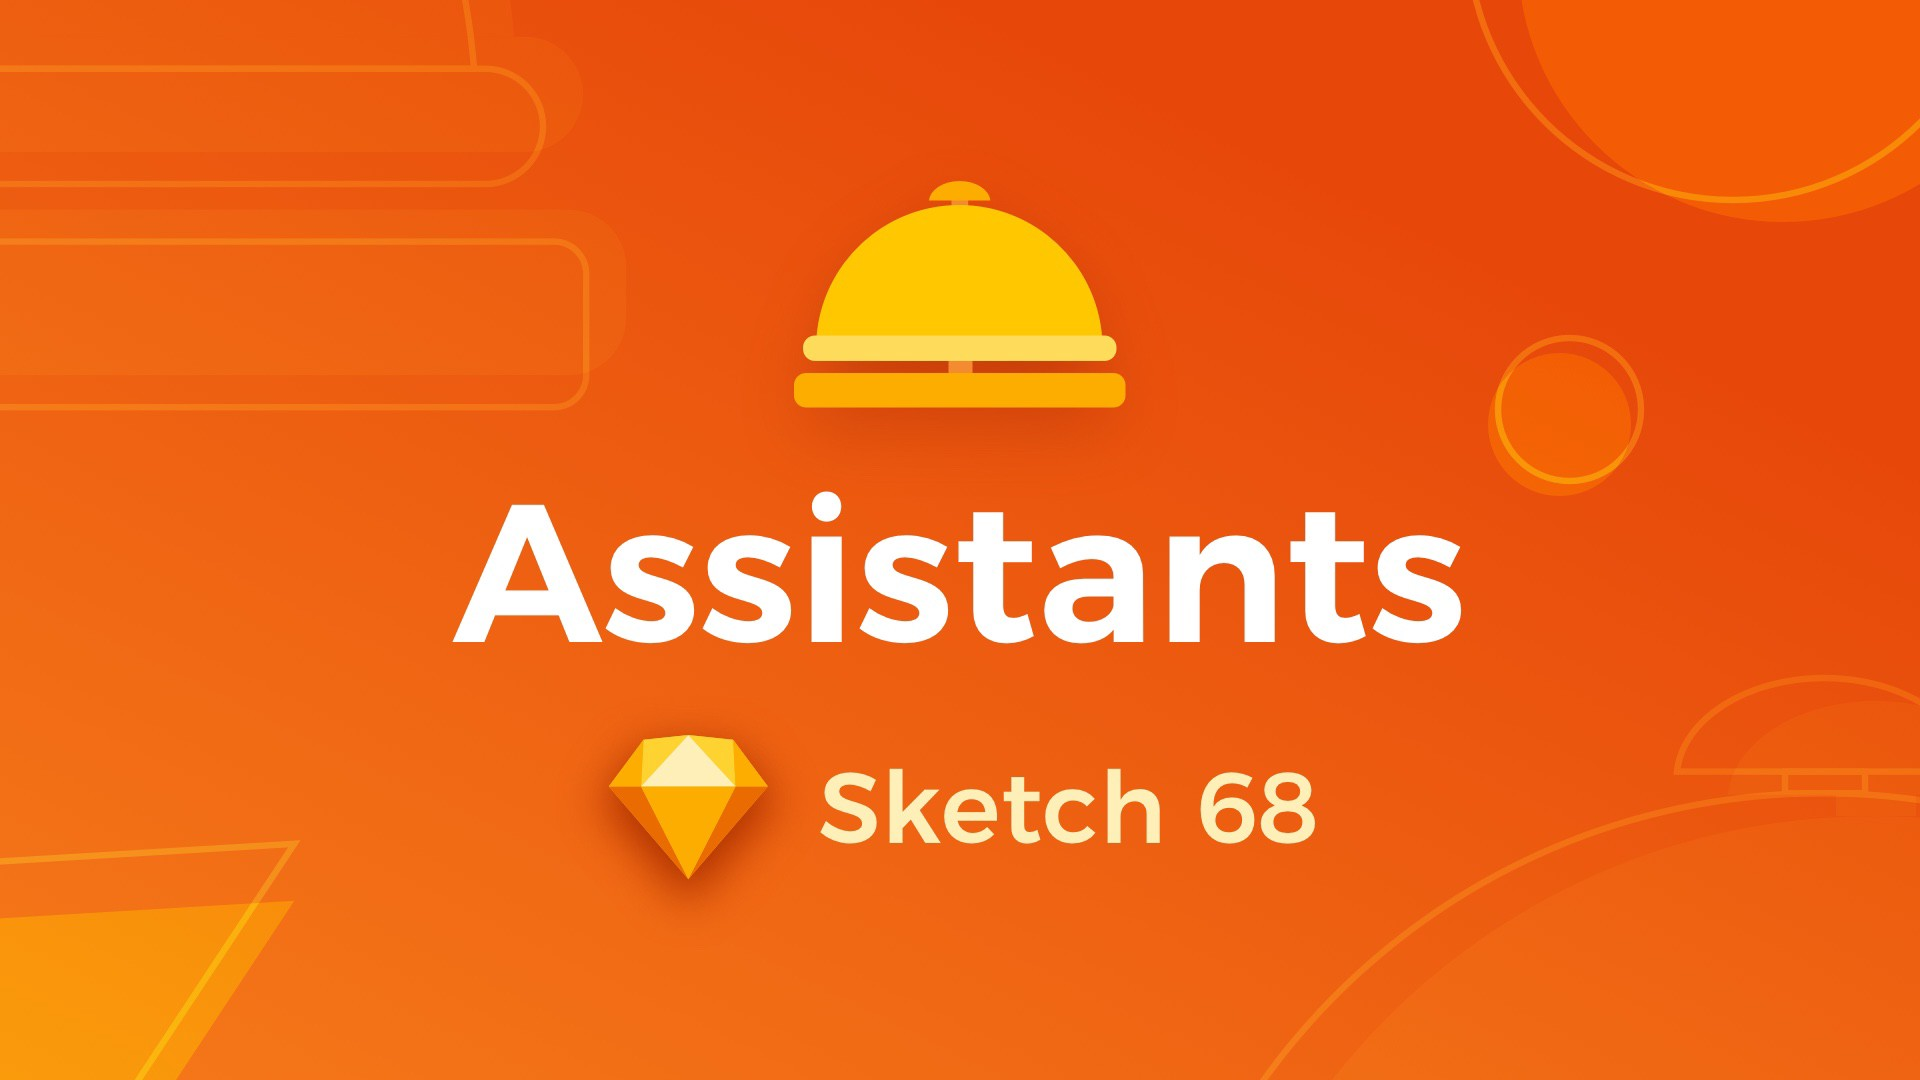 Sketch 68 featured image